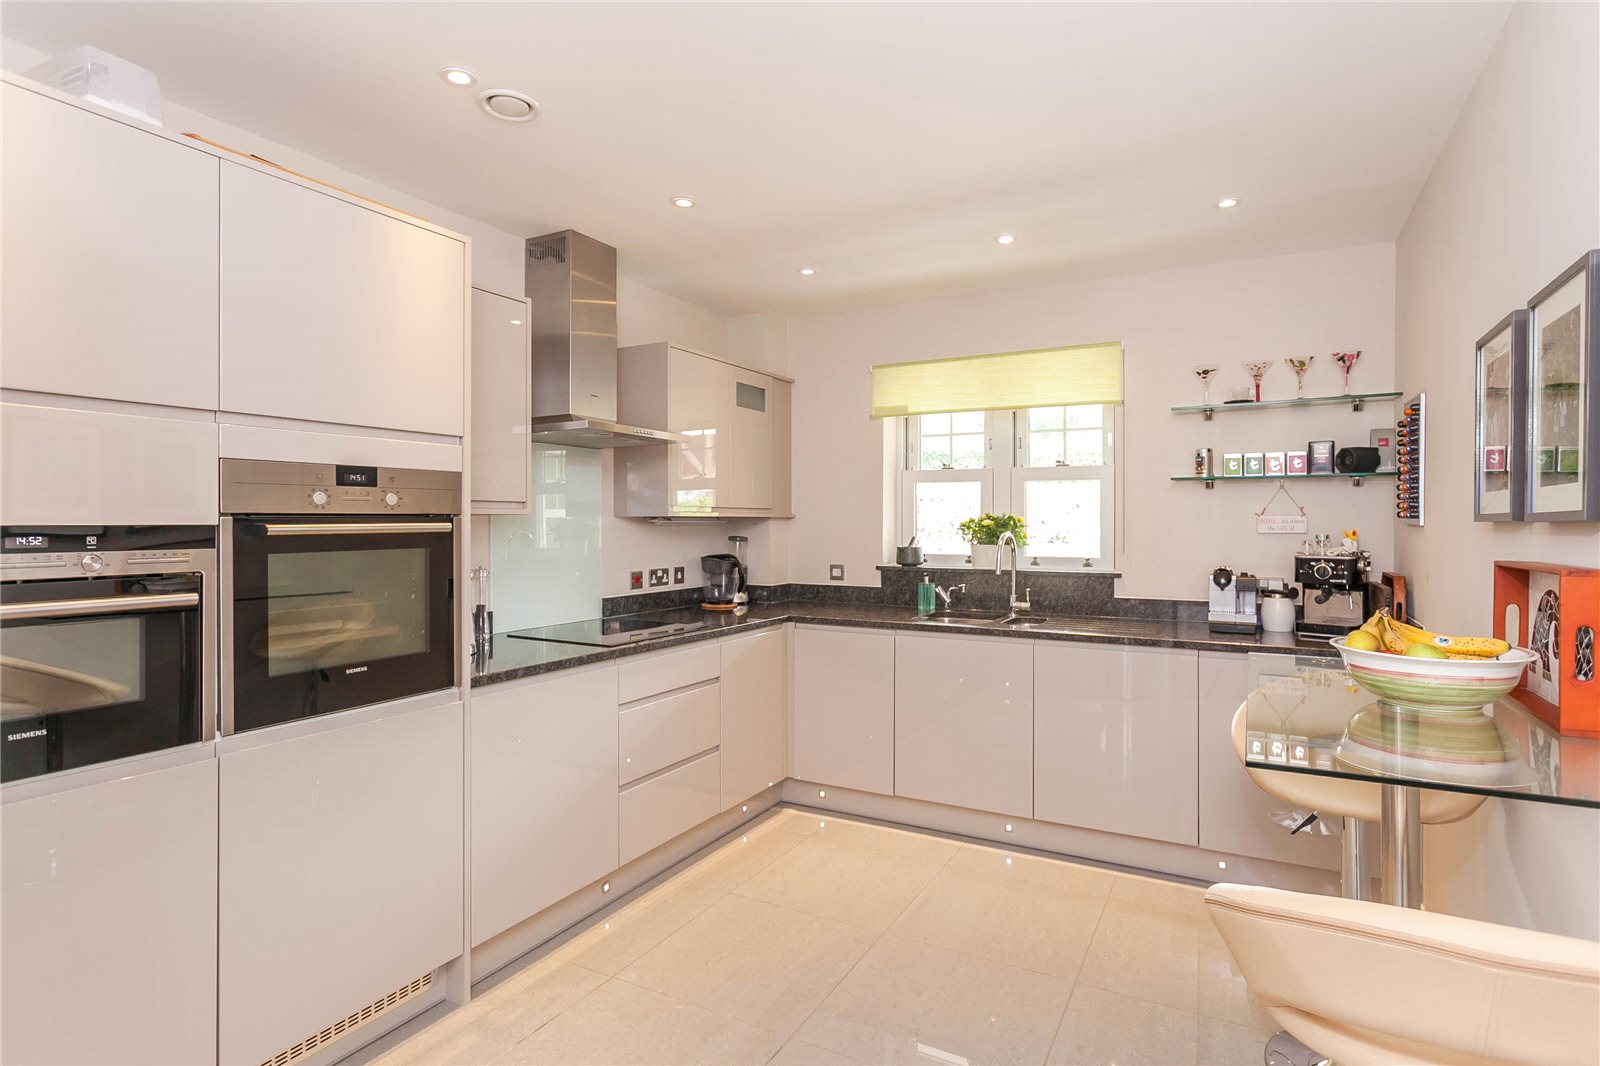 Additional photo for property listing at Baytrees, 20 South Park View, Gerrards Cross, Buckinghamshire, SL9 Gerrards Cross, Inghilterra